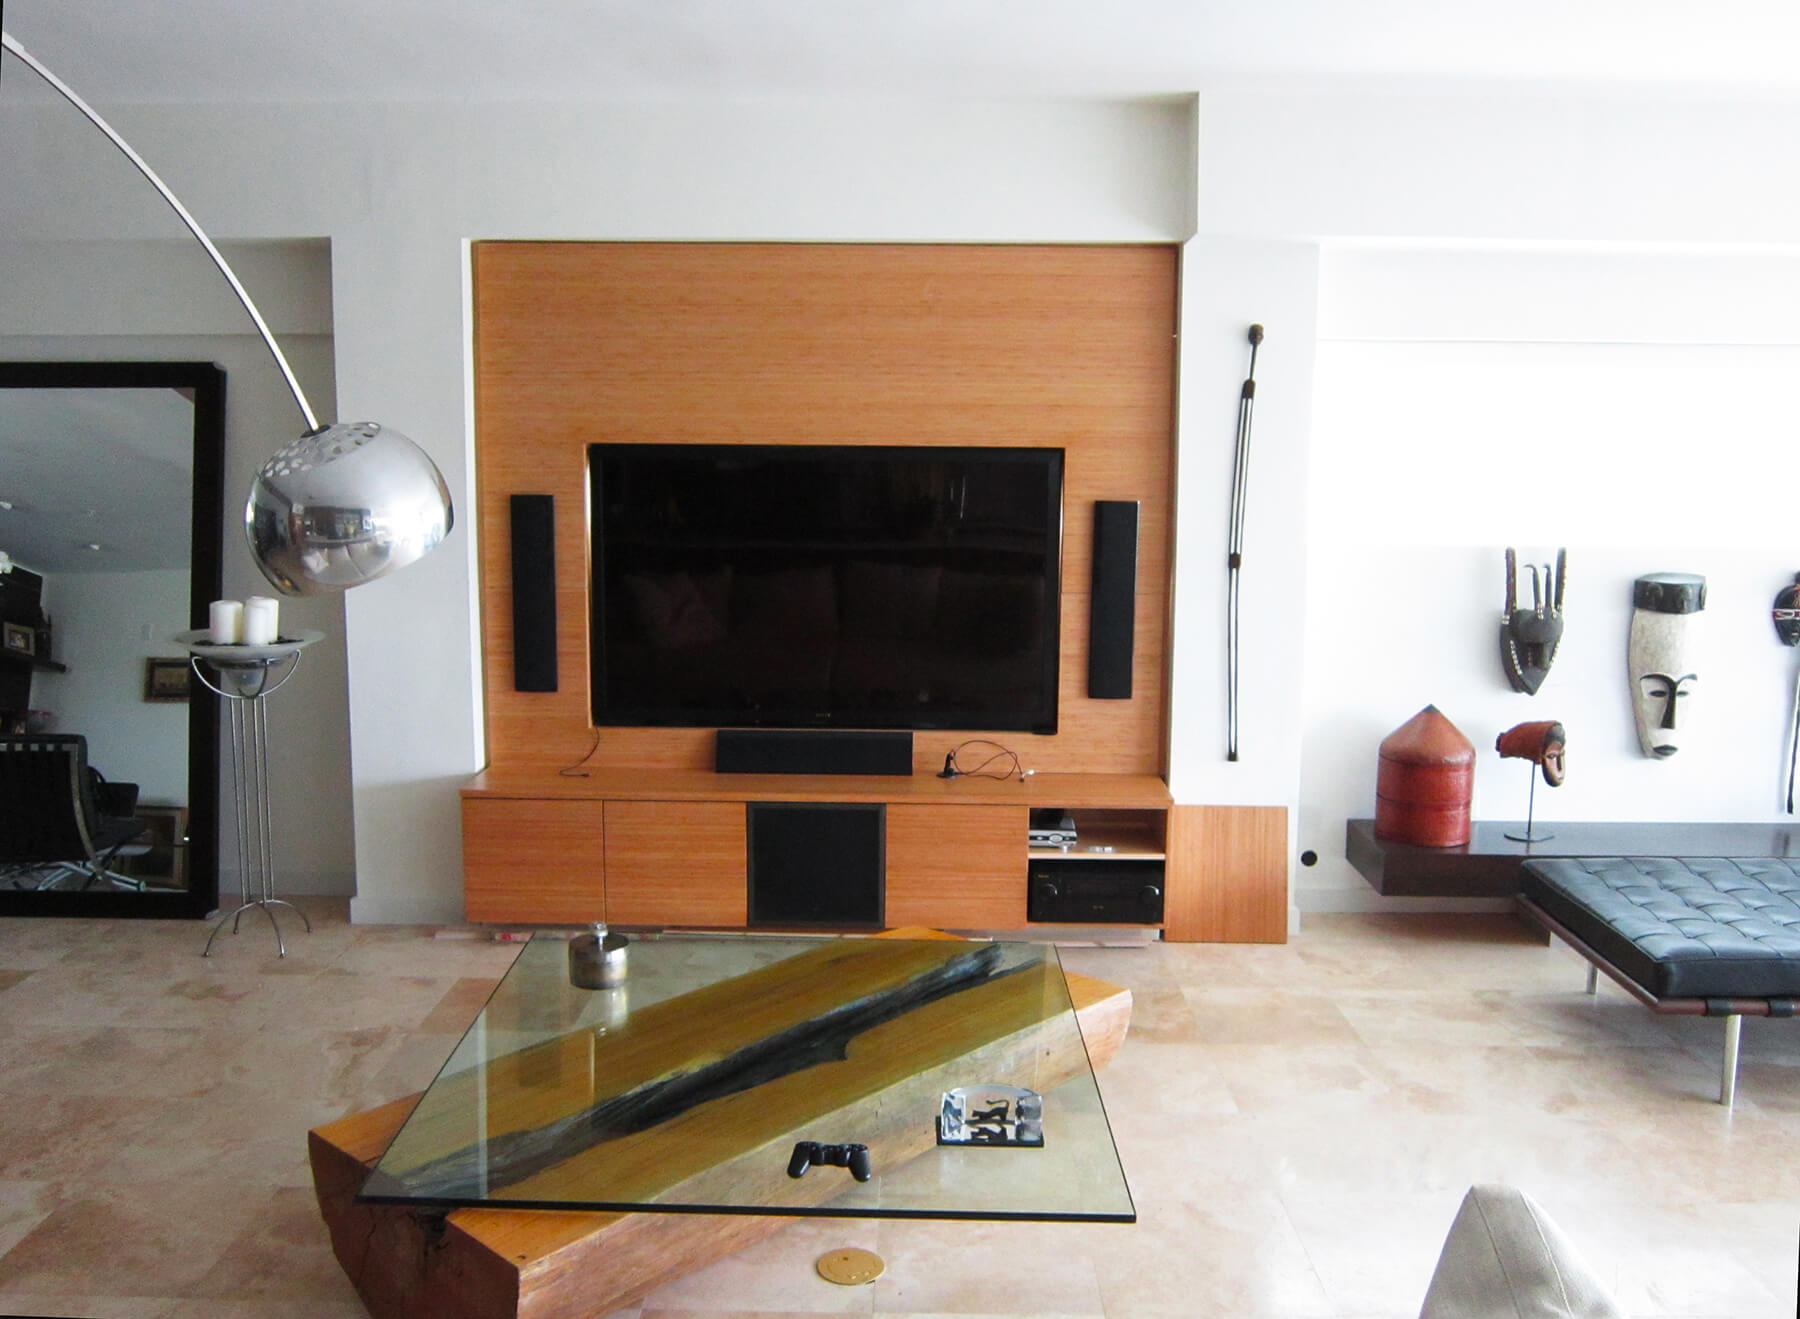 Custom Wooden Wall for TV and Entertainment System